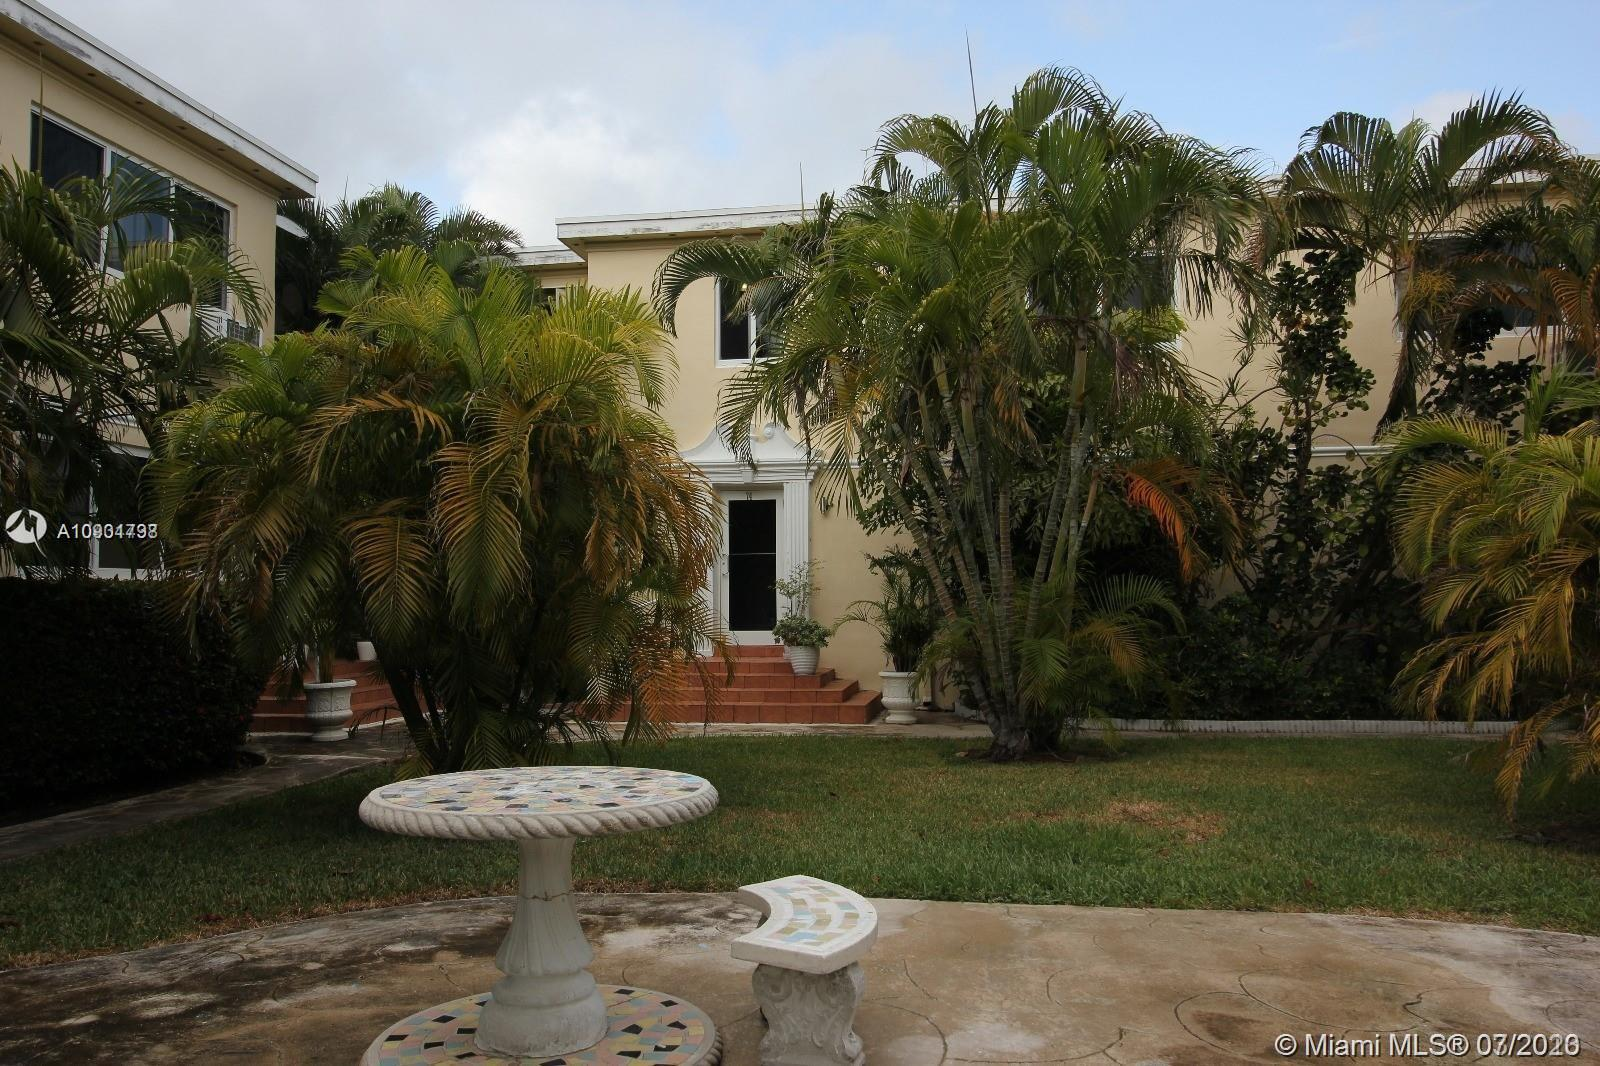 Incredible opportunity to live in beautiful Bay Harbor Islands. Walking distance to white sand beaches, shopping, and fine dining. This second floor apartment features 1 bedroom, 1 bathroom, living/dining area and a separate kitchen. It has been updated with brand new high impact windows, as well as refinished hardwood floors throughout. The unit comes with 1 parking space and offers guest parking as well.